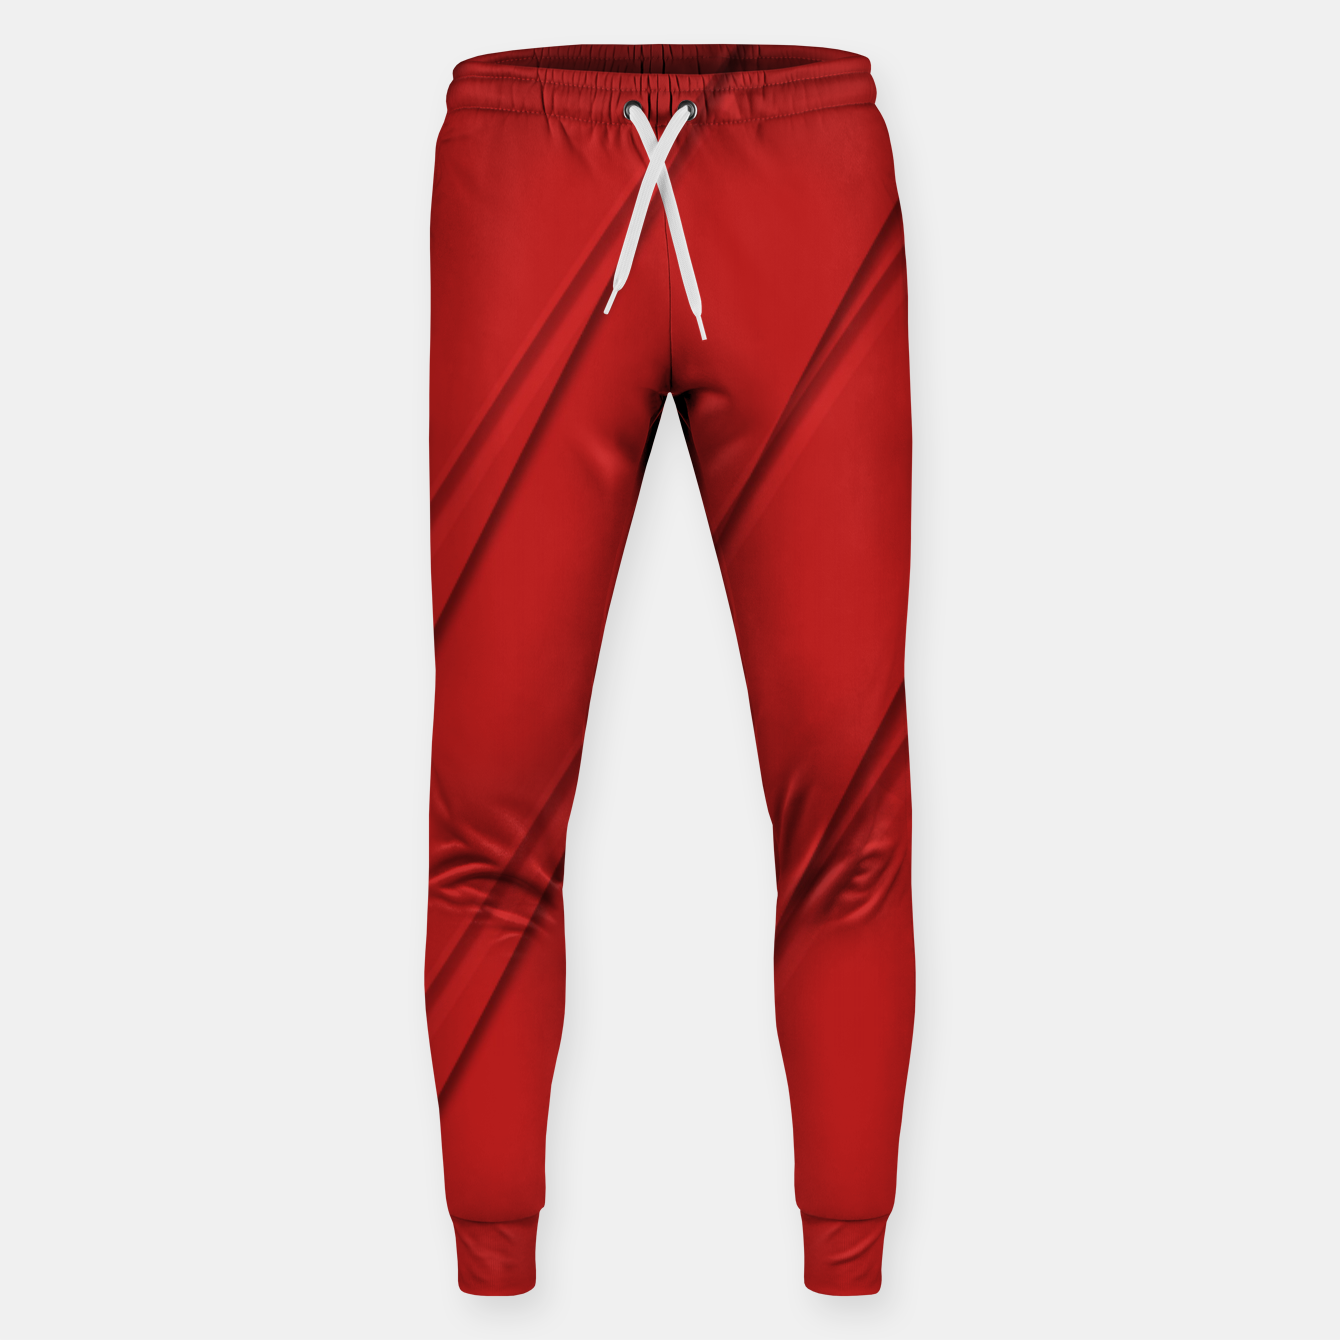 Image of Print Red Pattern Design Sweatpants - Live Heroes